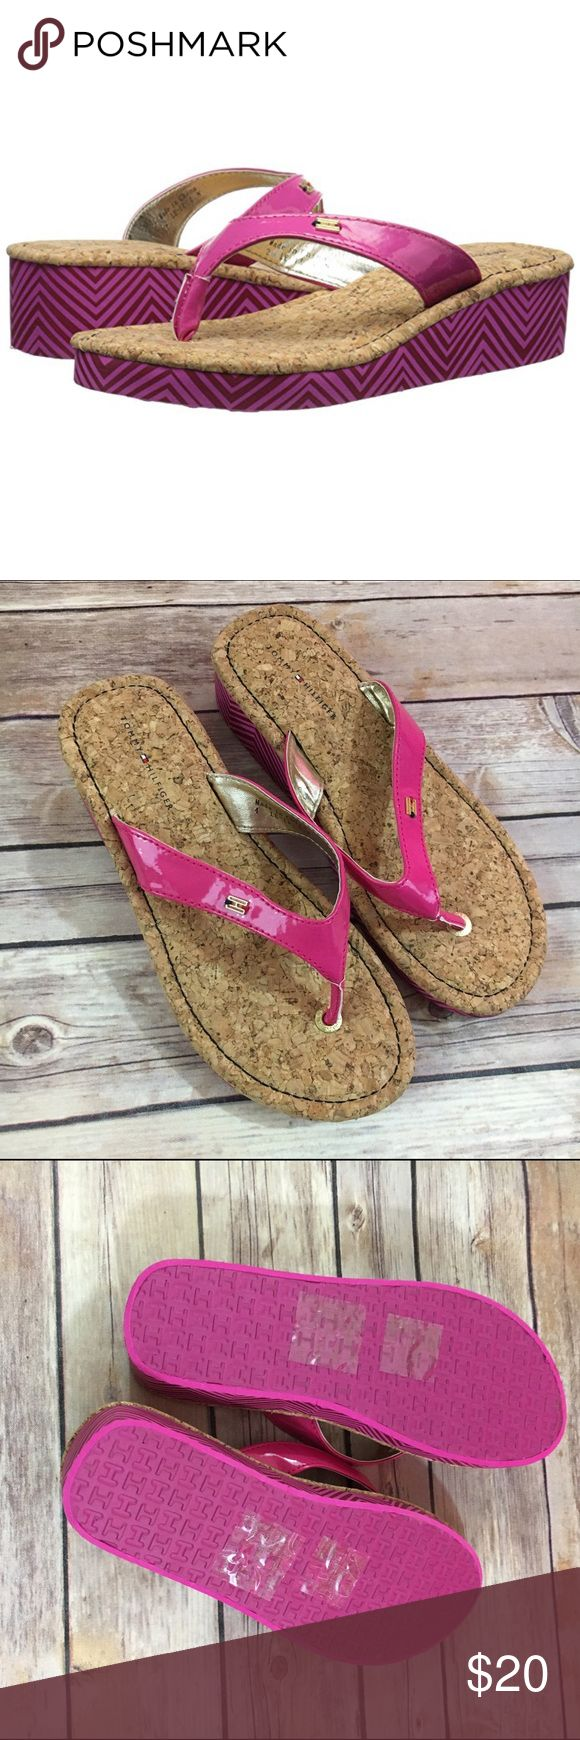 """NEW Tommy Hilfiger Pink Joy Chevron Flip Flops 4 NEW Tommy Hilfiger Pink Joy Chevron Flip Flops 4  New without tags.  Pattern is """"Joy Chevron"""".    Heighten her summer style with a pair of chic wedge sandals from Tommy Hilfiger. * Decorative charm at vamp * Wedge heel with chevron pattern * Synthetic upper; EVA sole #new #wedge #pink #flipflops #cork #chevron #sandals #tommyhilfiger Tommy Hilfiger Shoes Sandals & Flip Flops"""